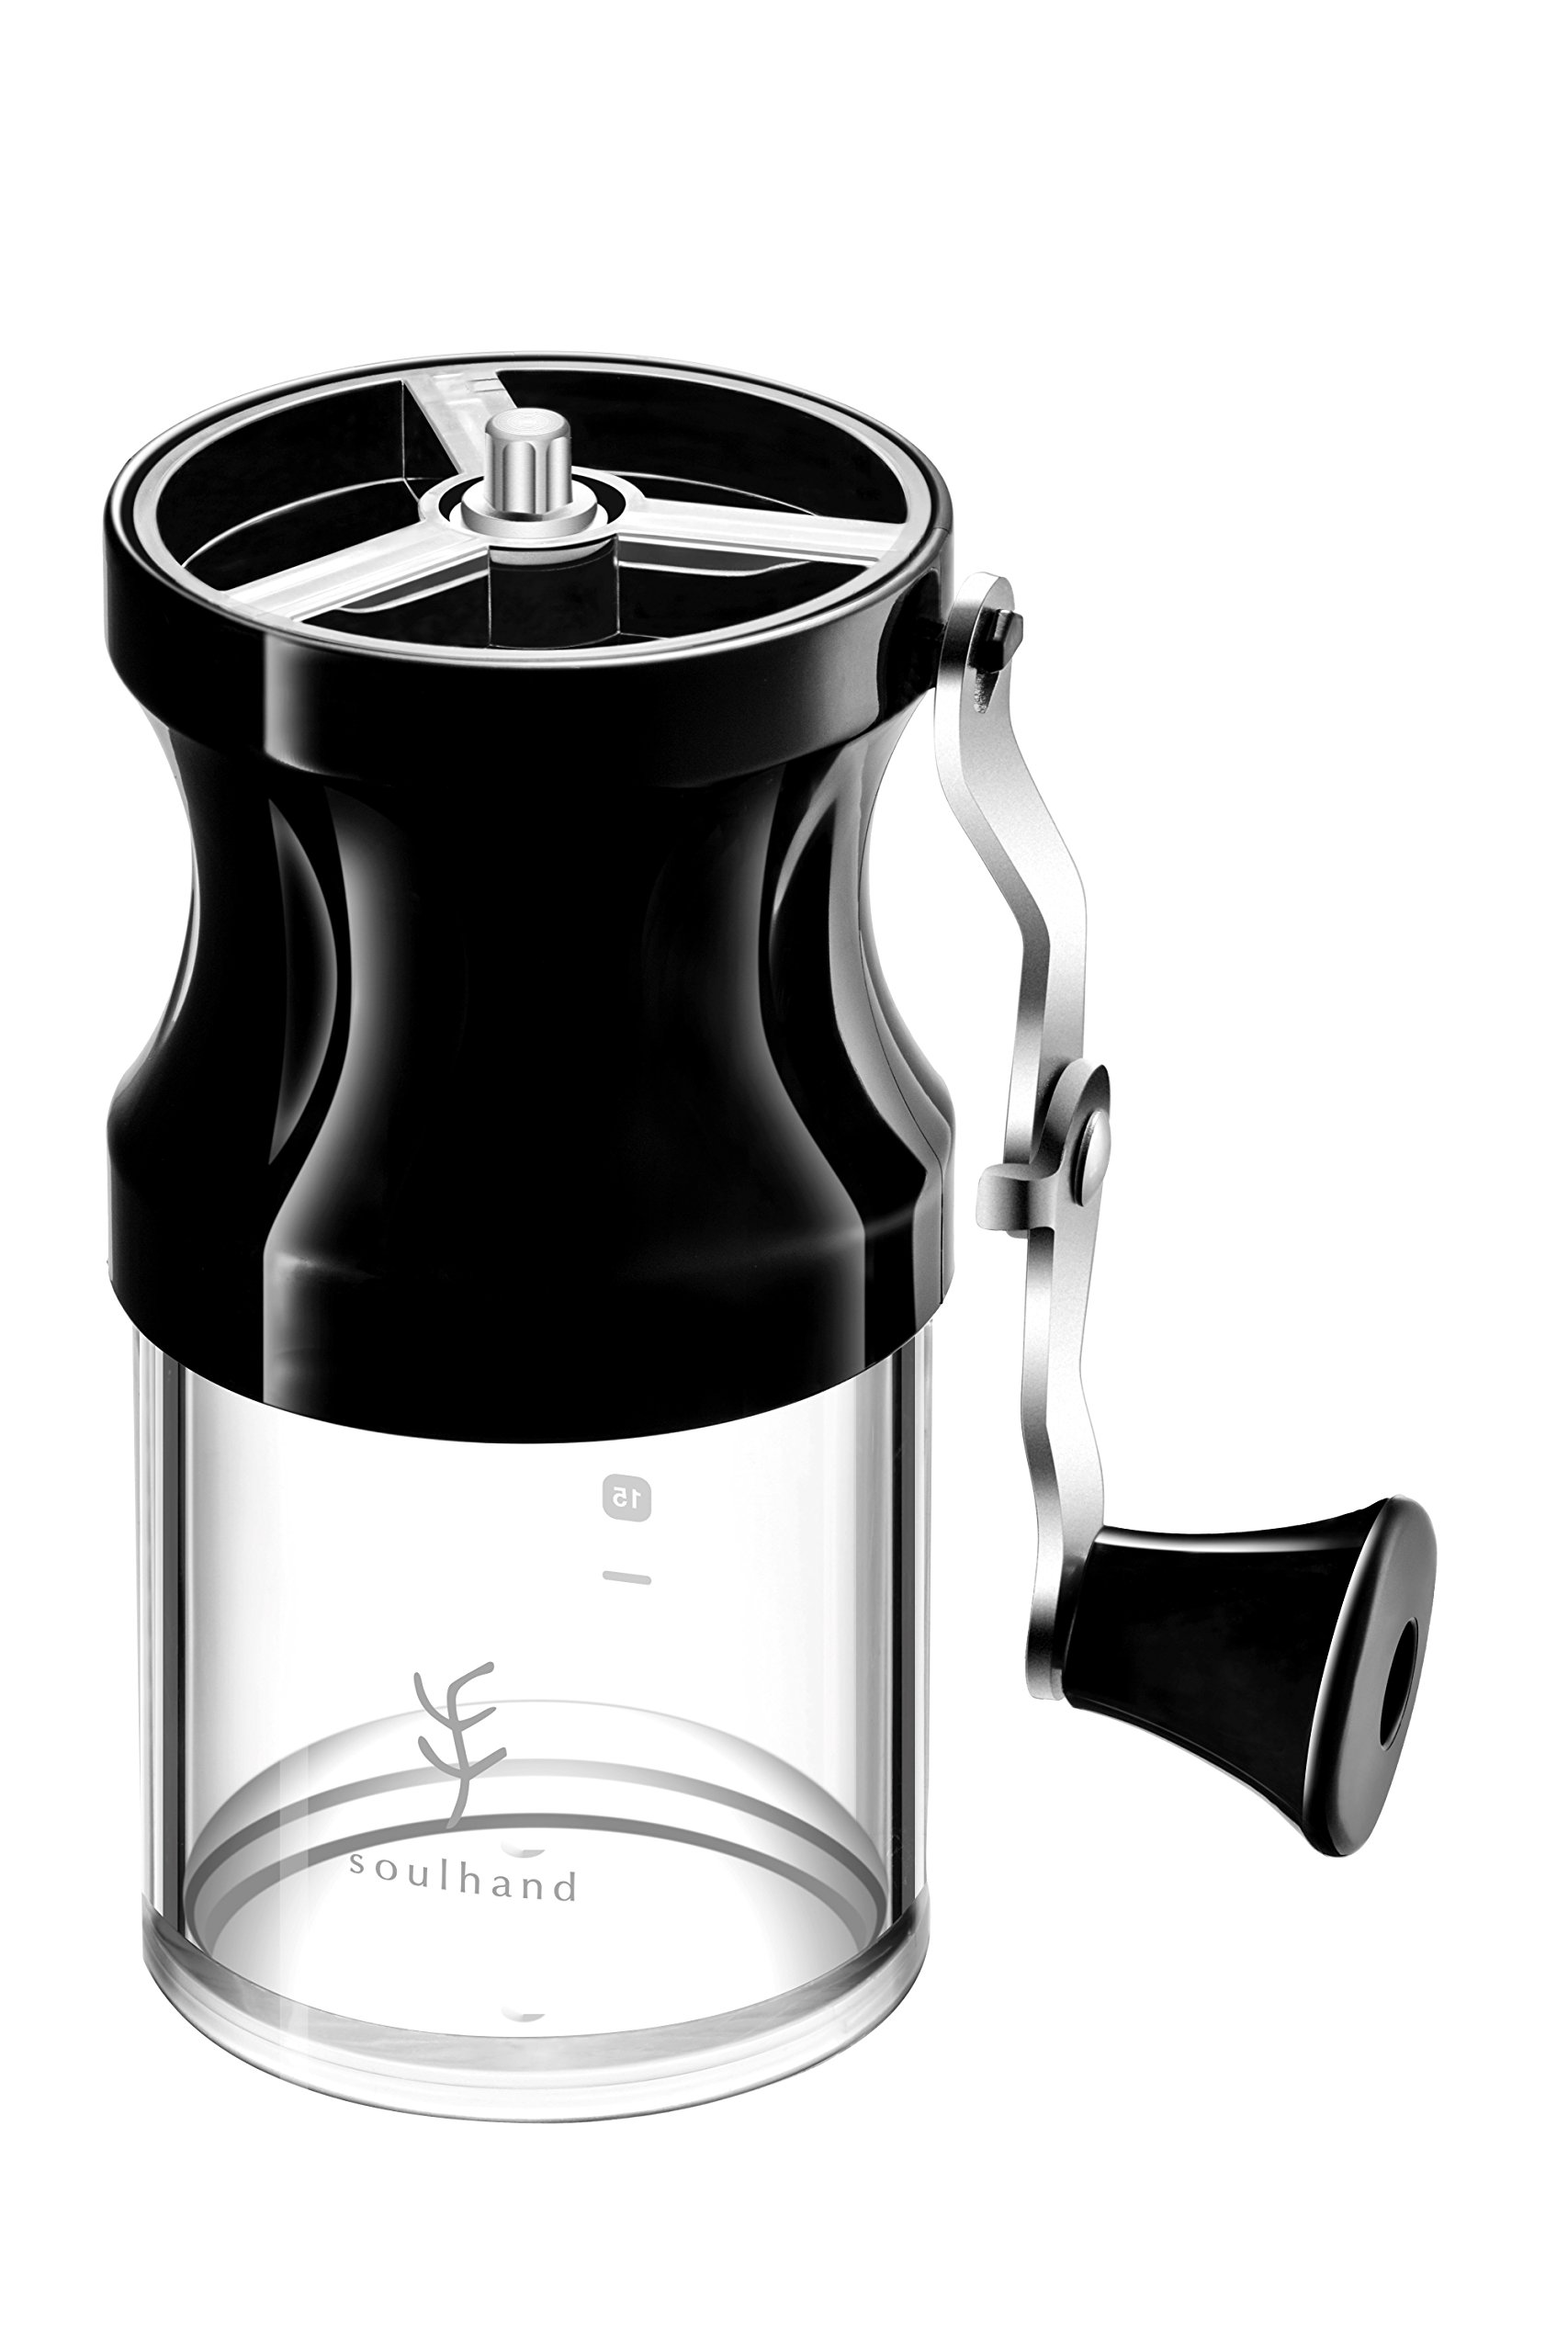 Soulhand Manual Coffee Grinder, Portable Coffee Bean Mill, 9 Adjustable Settings Conical Ceramic Burrs Foldaway Hand Crank with Cleaning Brush